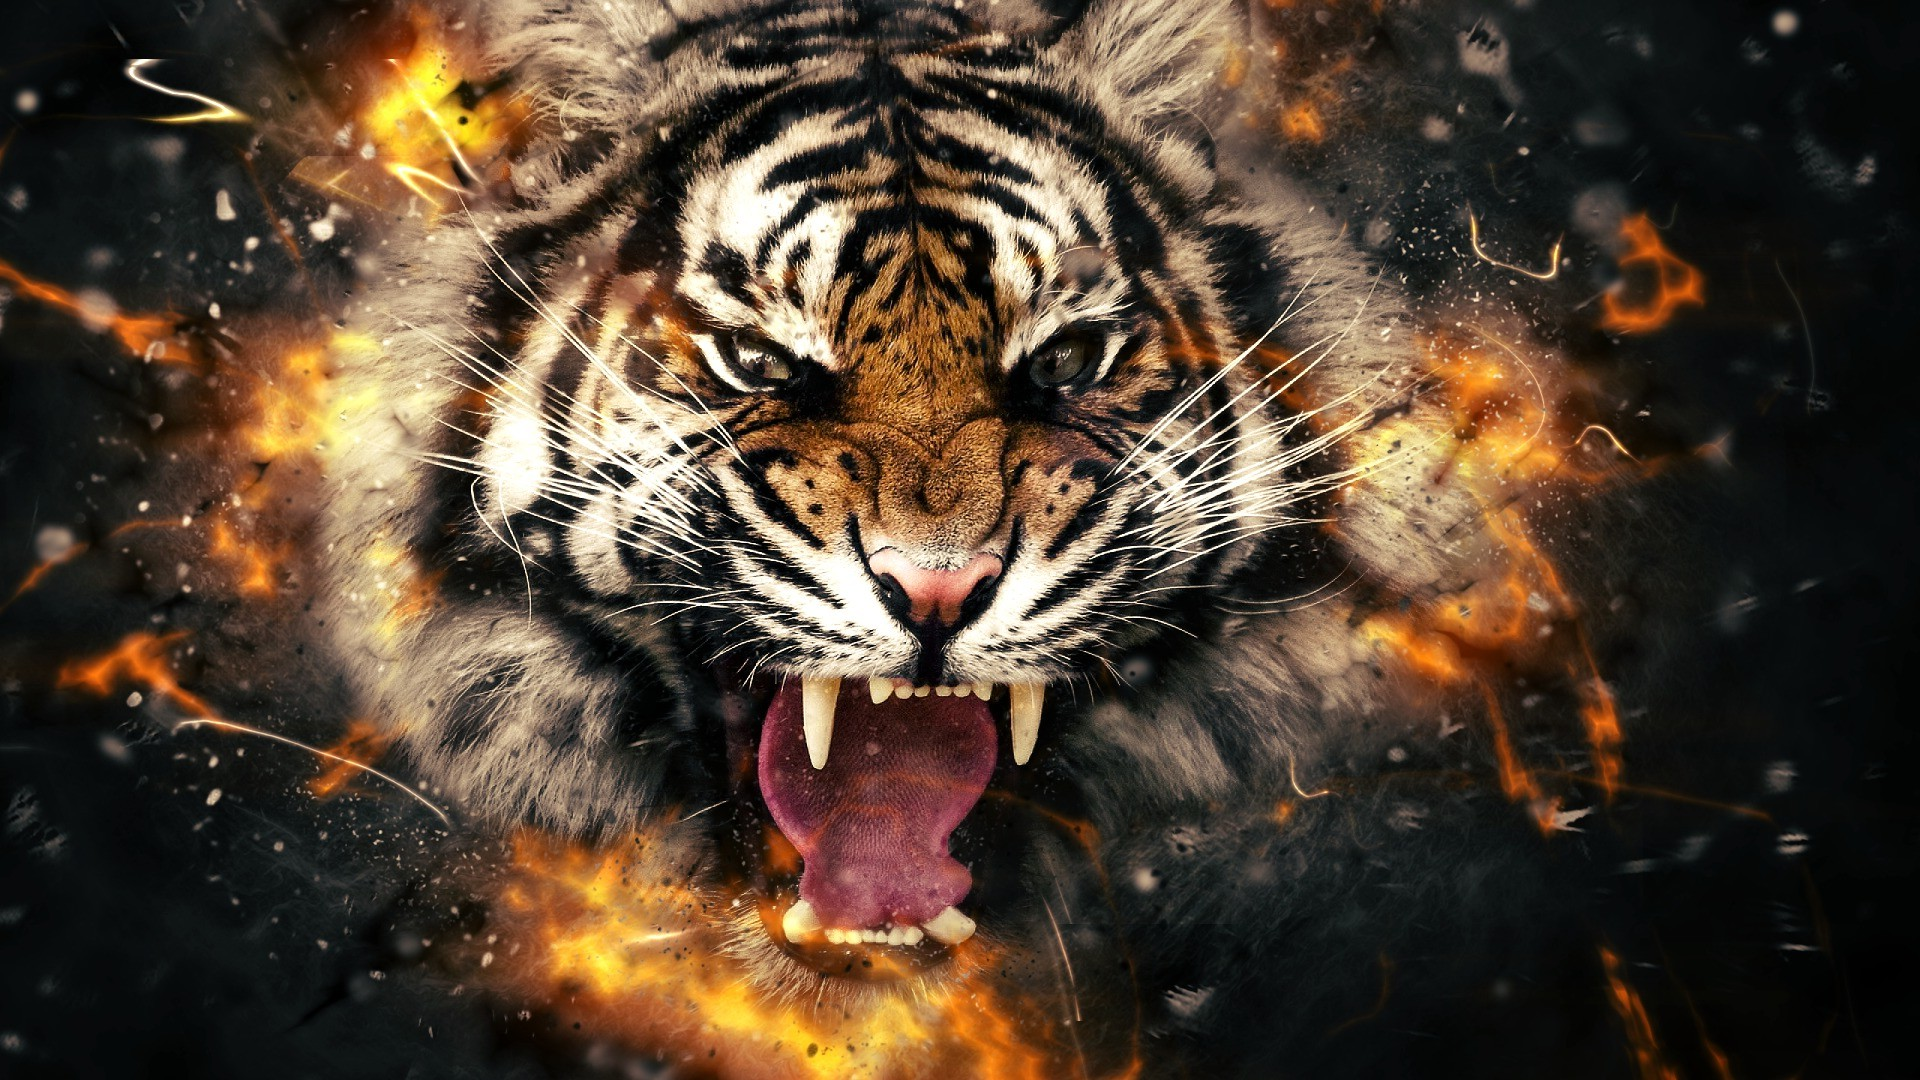 Back To 86 3d Digital Face Wallpapers Angry Tiger